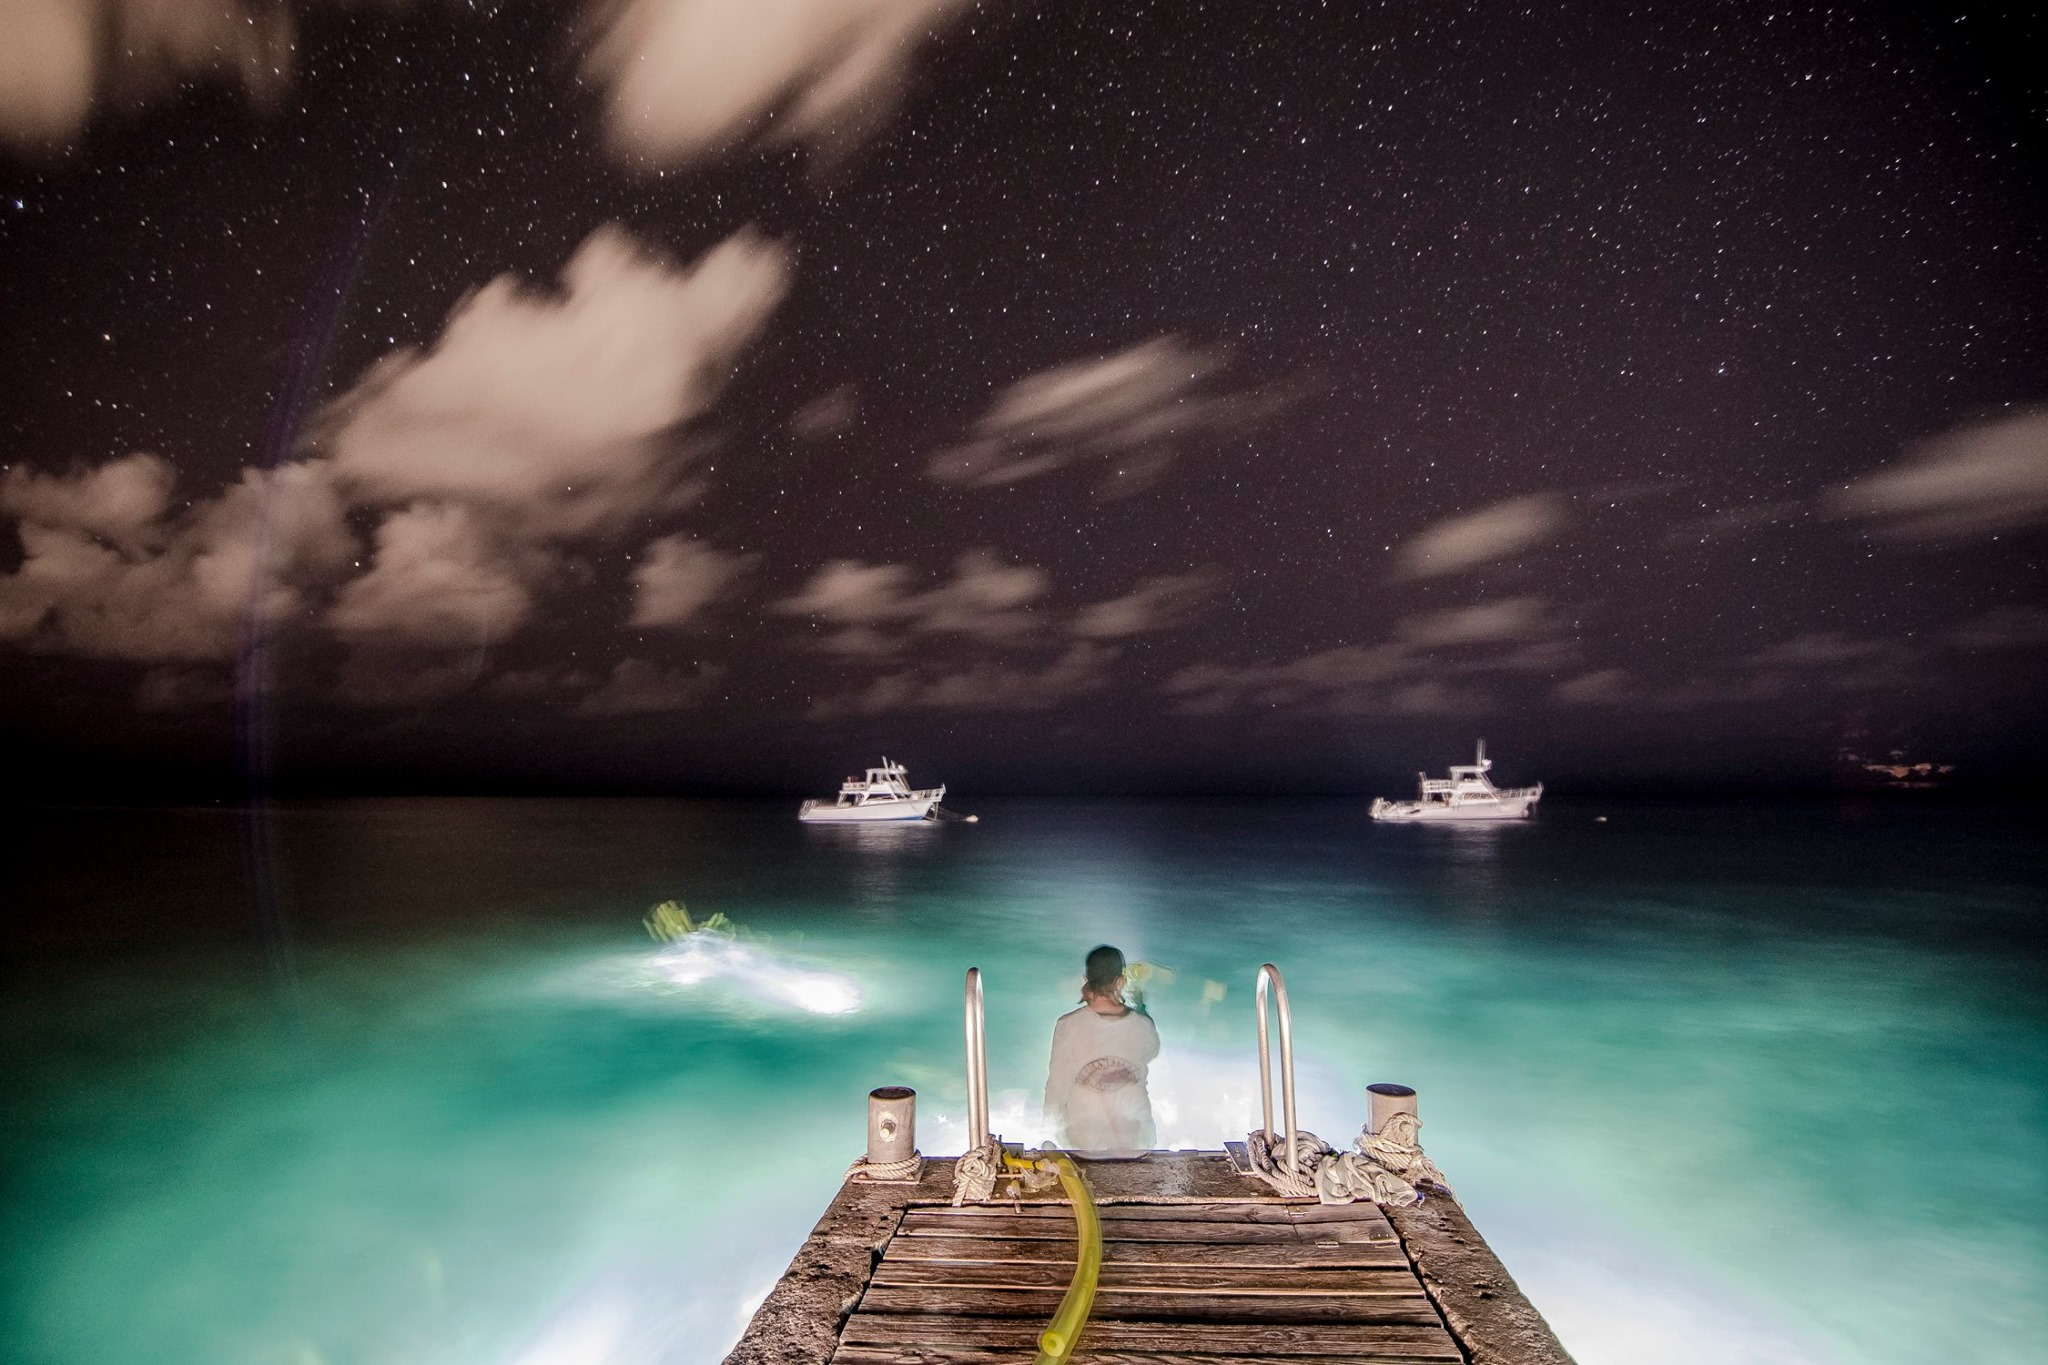 Fermilab Dive Club members enjoy a night snorkel in the Grand Cayman while the camera looks on. people Photo: Derek Plant